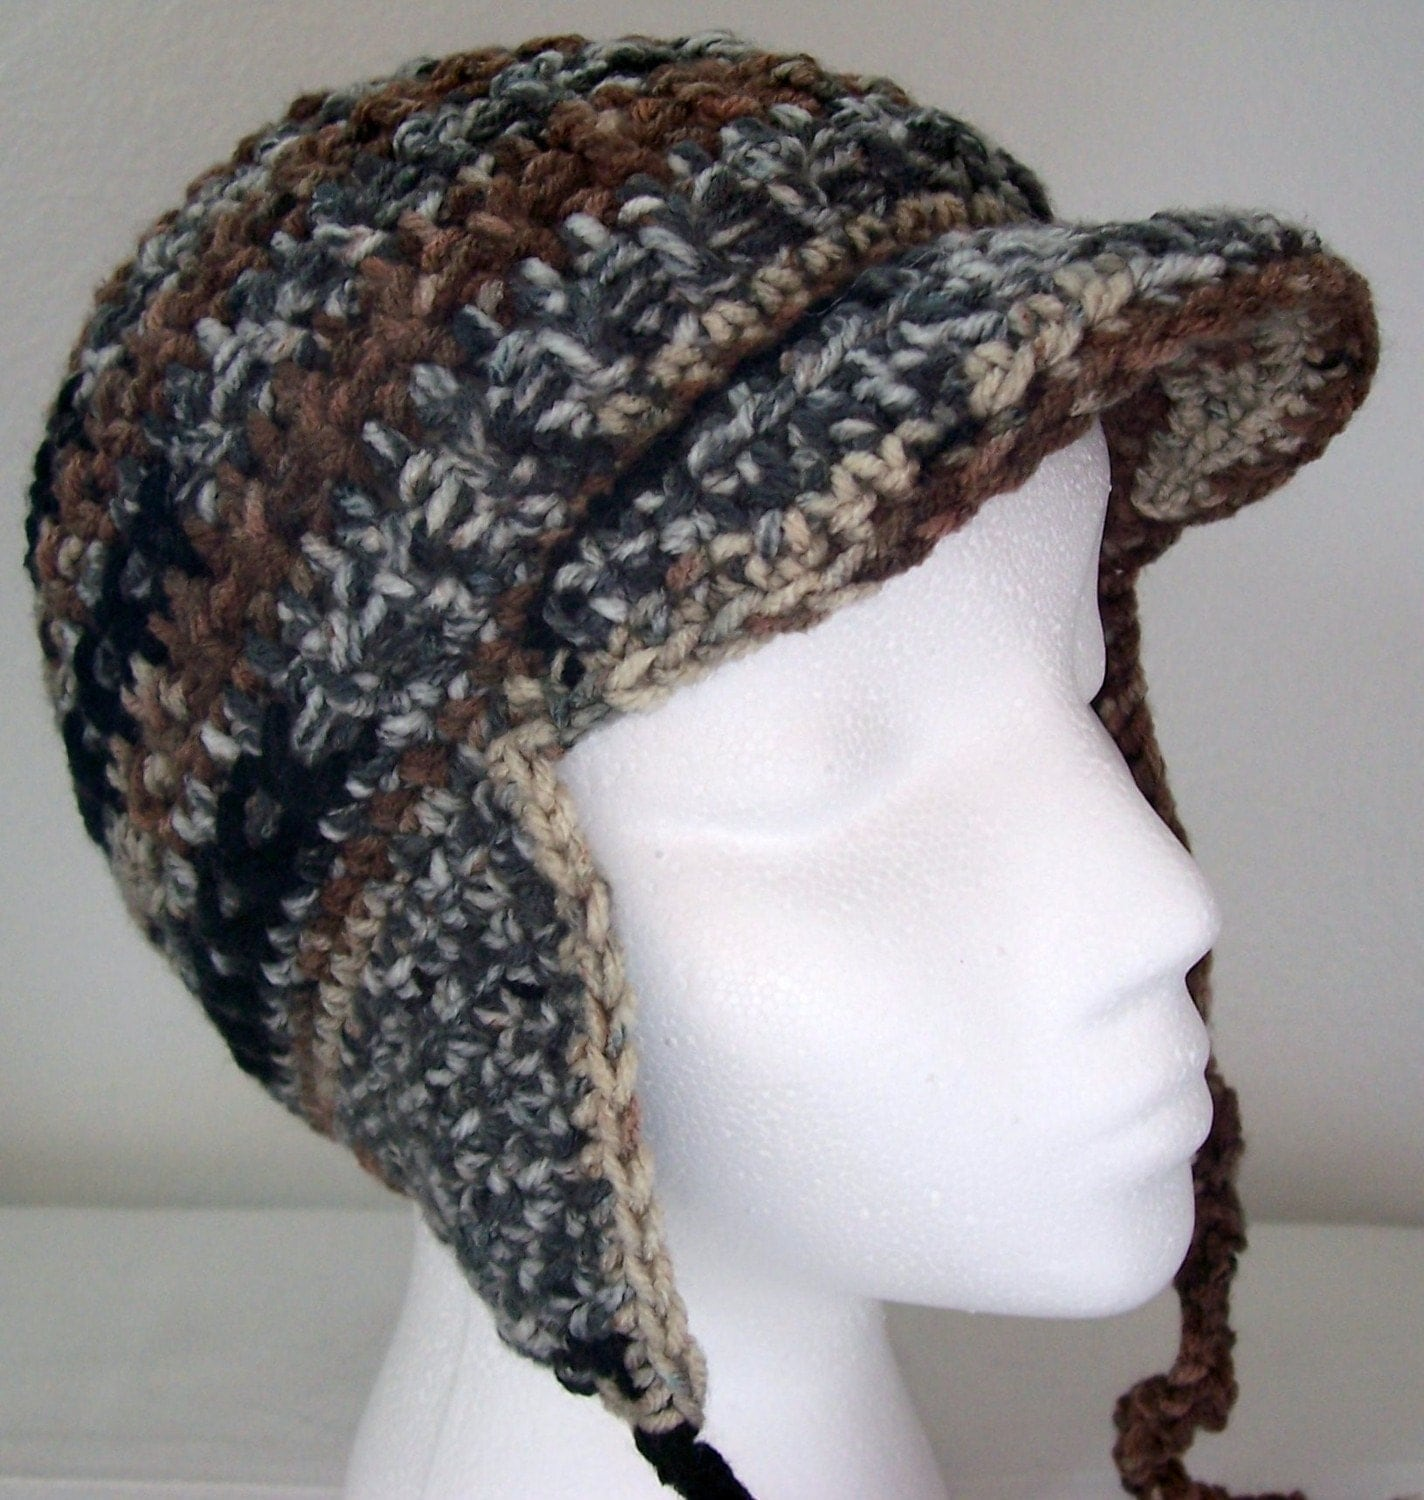 Amigurumi Earflap Hat : Crochet Earflap Hat with Brim and Ties in Shades of Brown and